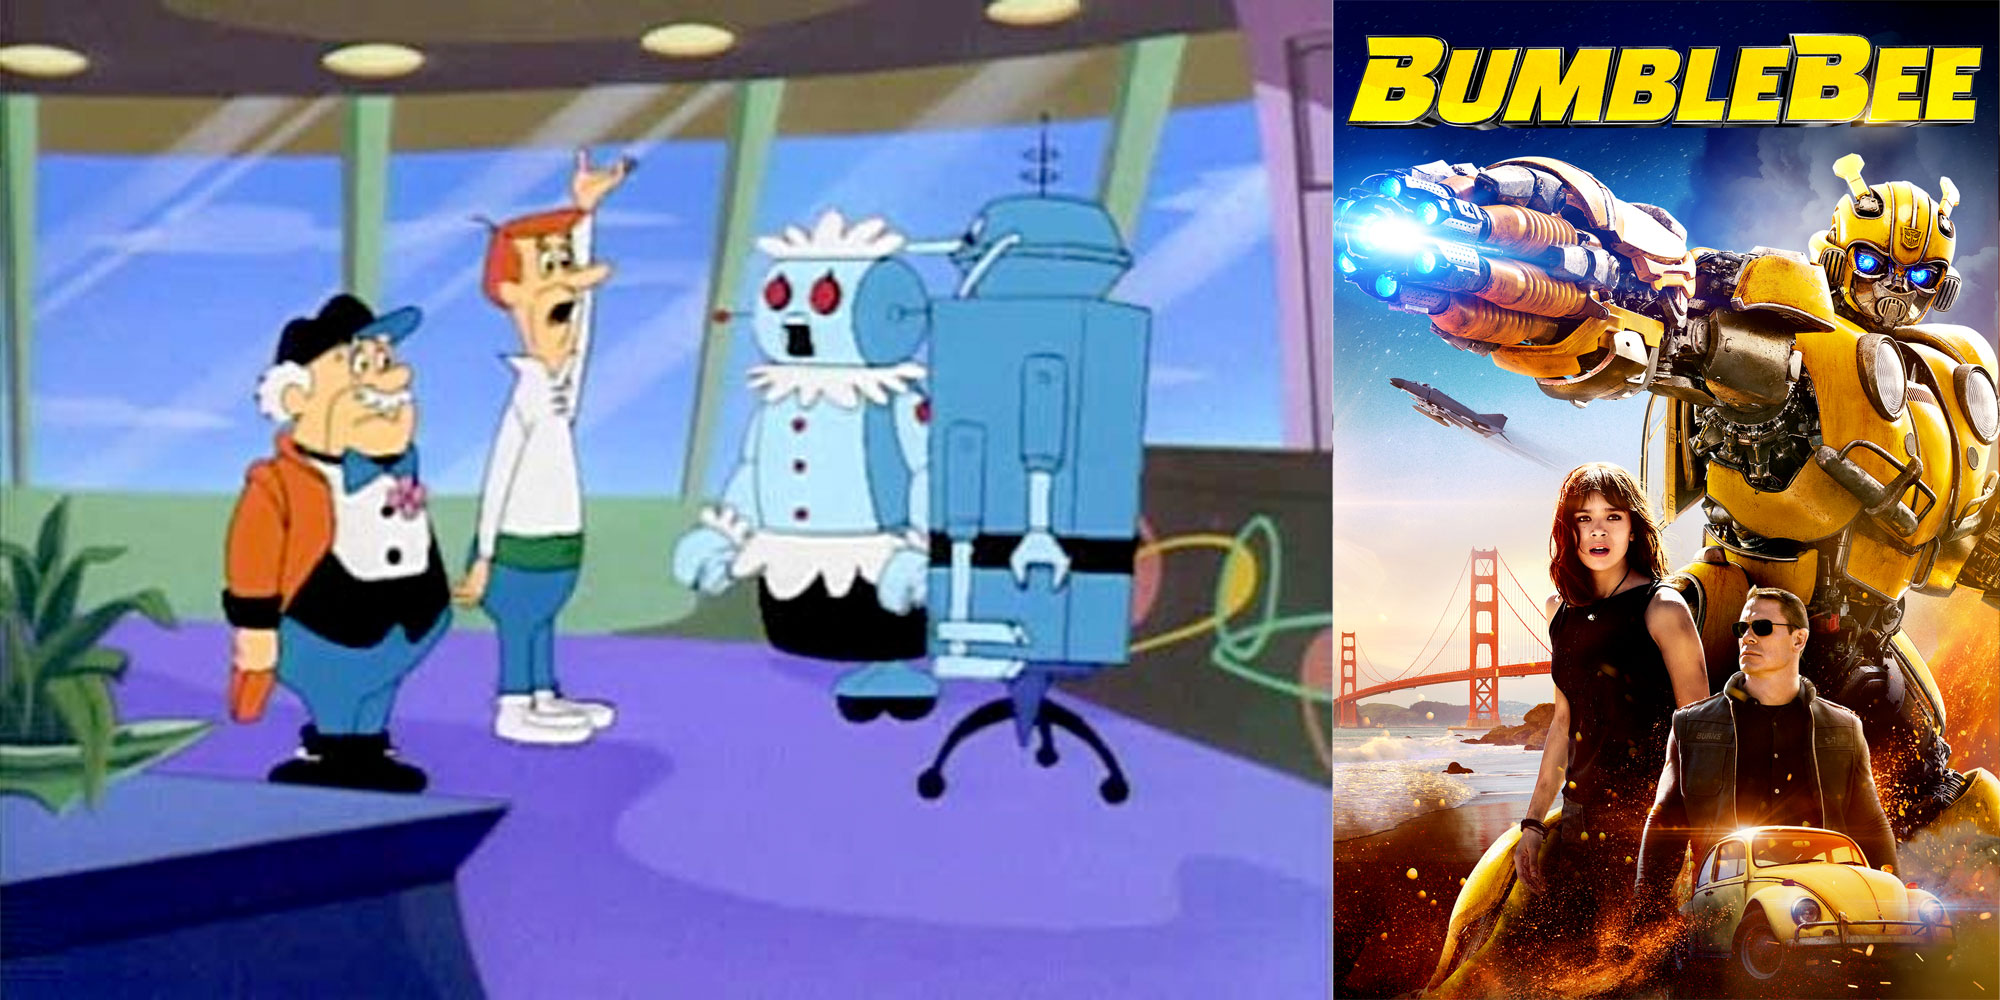 Digital Movies & TV from $5: The Jetsons Complete Series, Bumblebee, Marvel, more